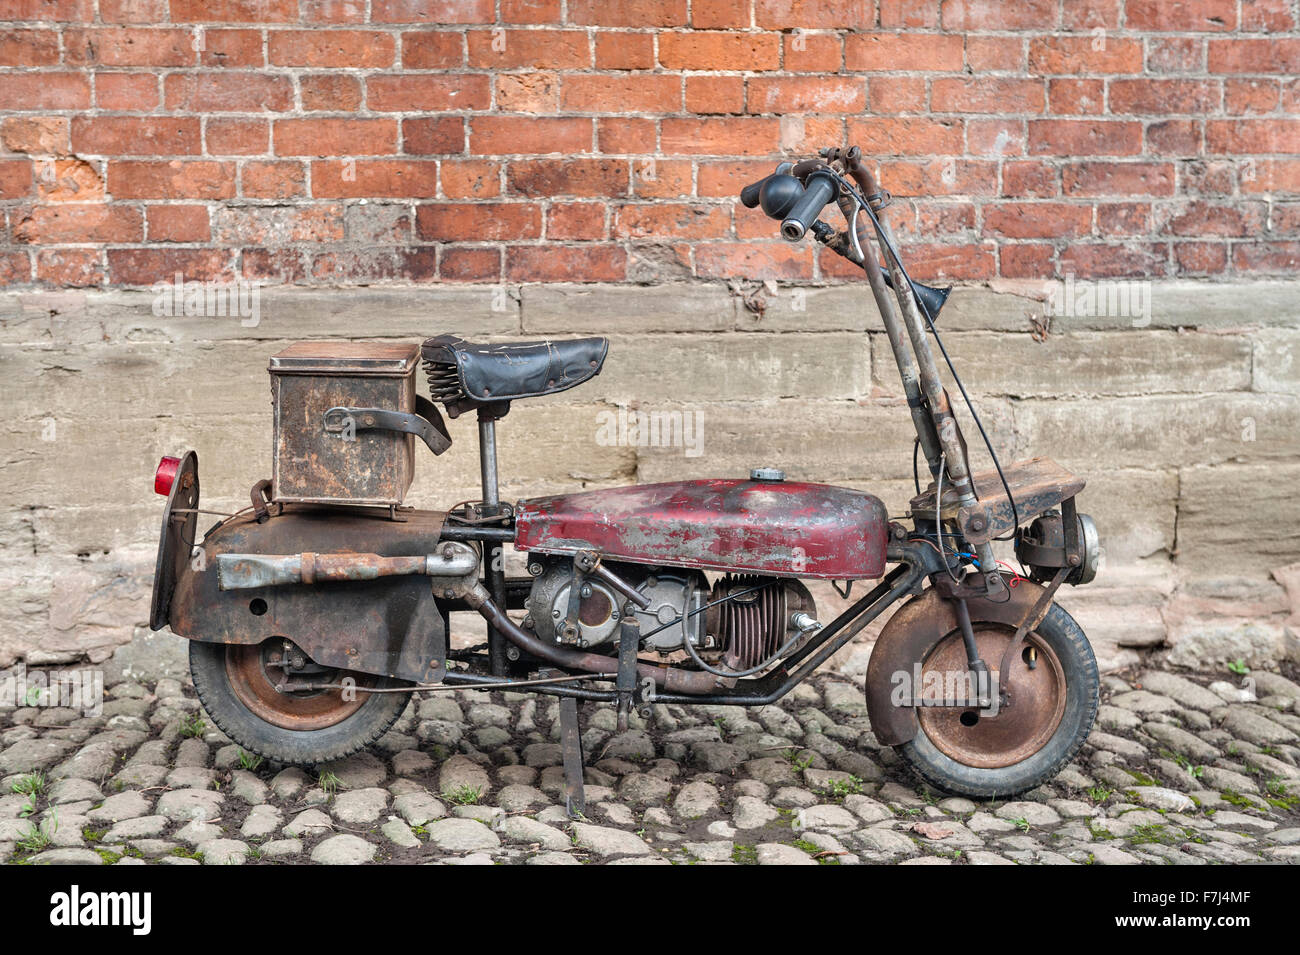 A Corgi folding motorcycle of 1948, based on the original British wartime model designed to be dropped by parachute - Stock Image